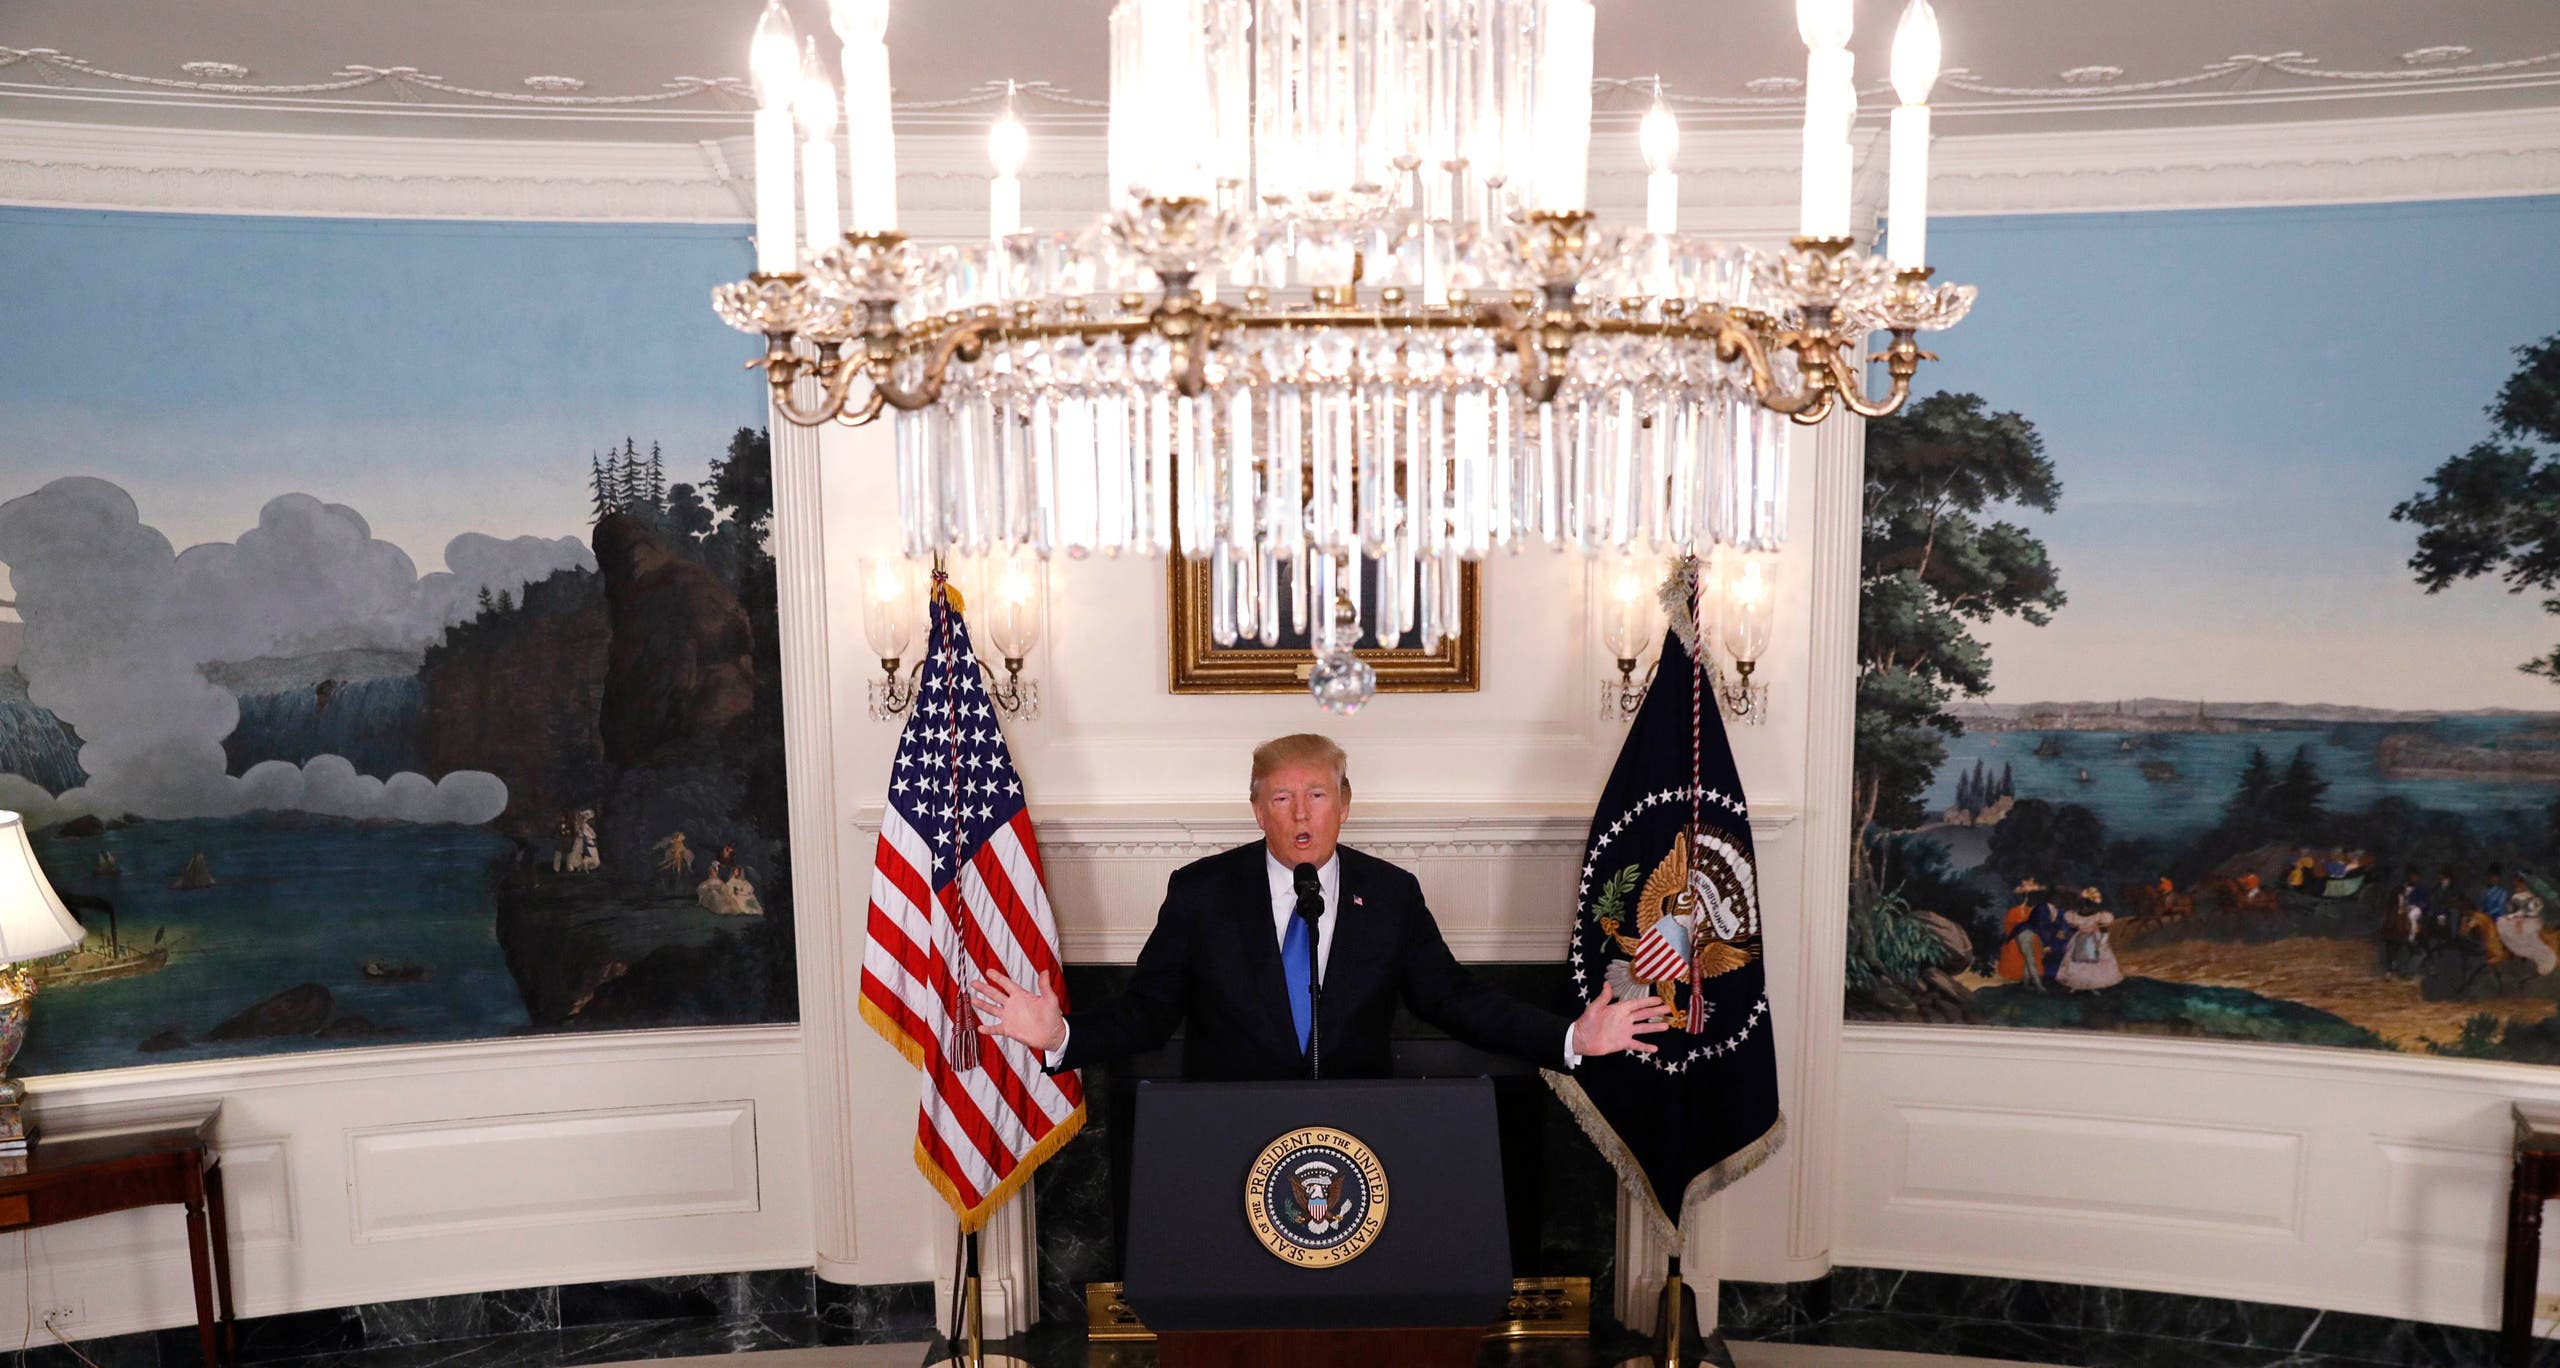 President Trump speaks about the Iran nuclear deal in the White House on October 13, 2017. (Reuters)